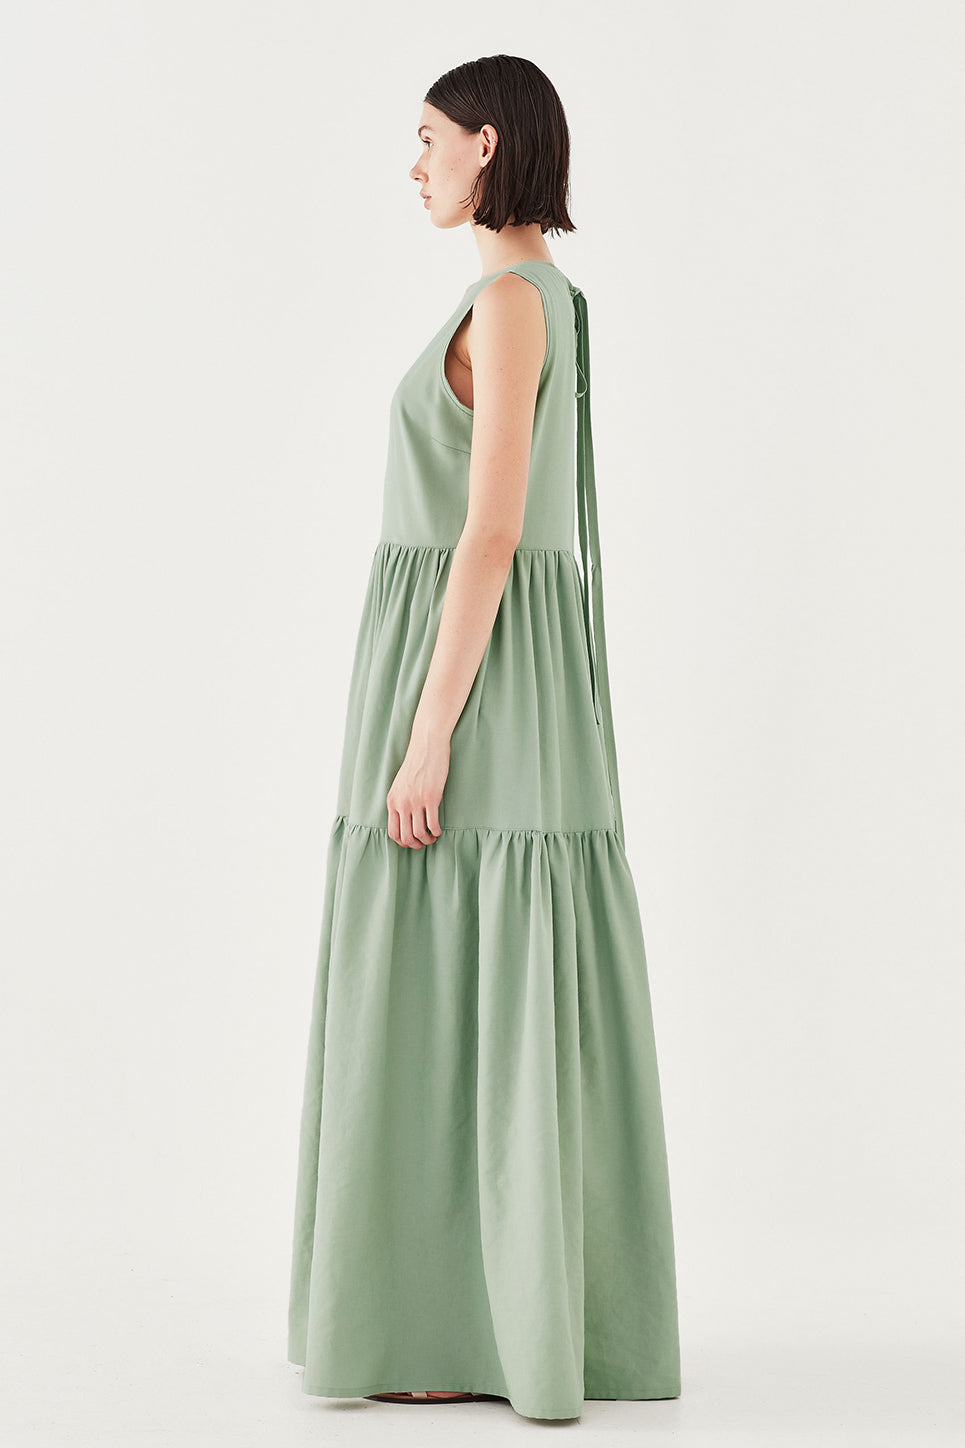 The Iris Dress in Pistachio